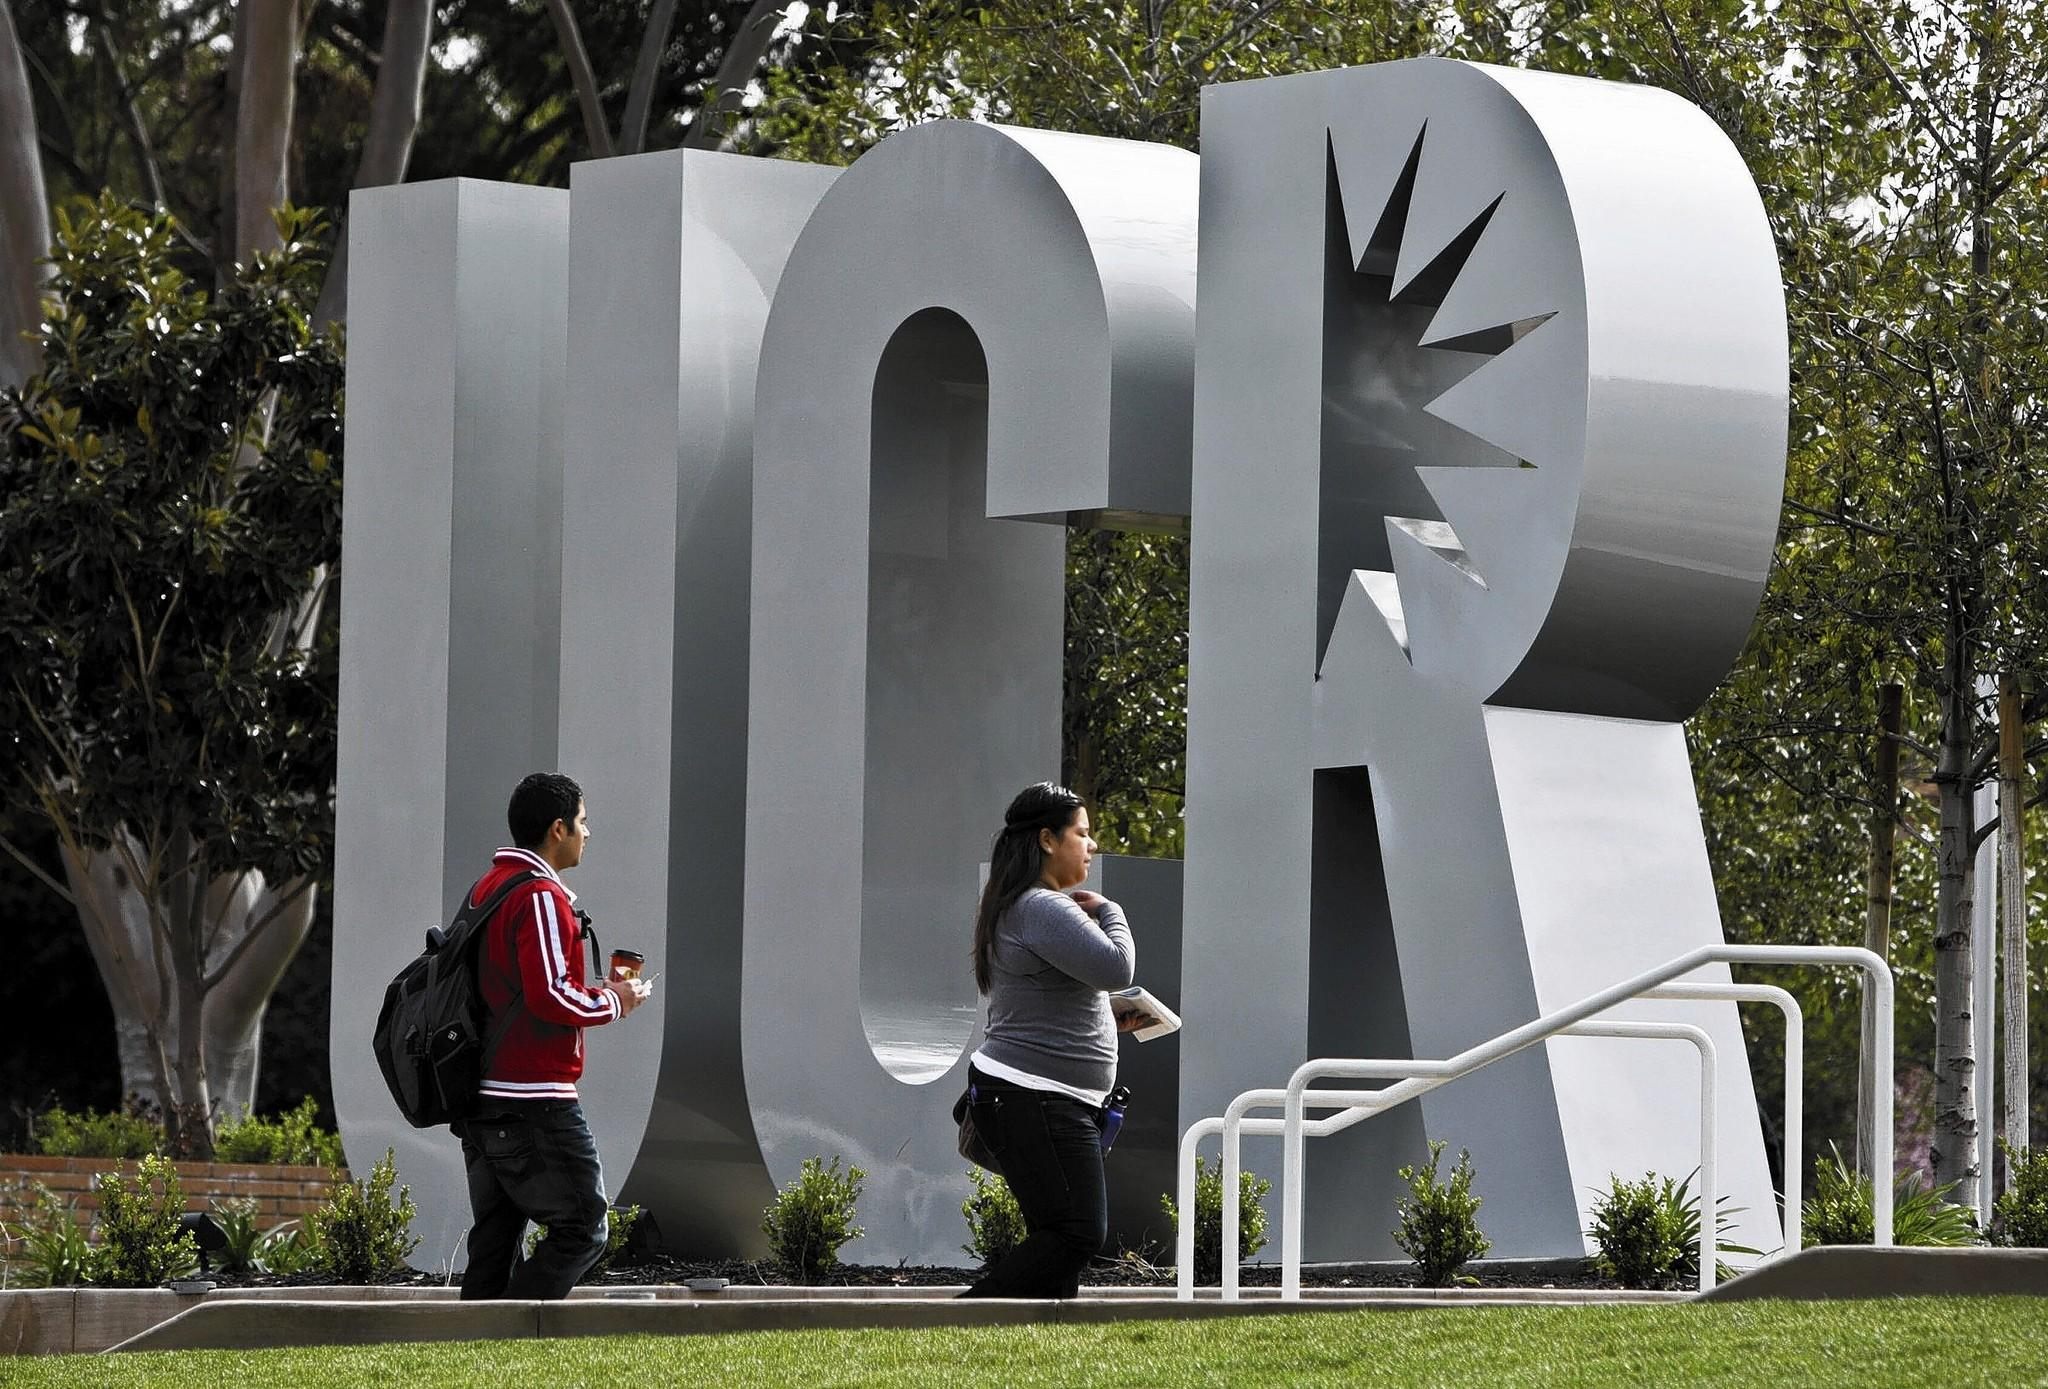 UC Riverside and all other University of California schools will go tobacco-free this year, banning cigarettes and other tobacco products on campus.